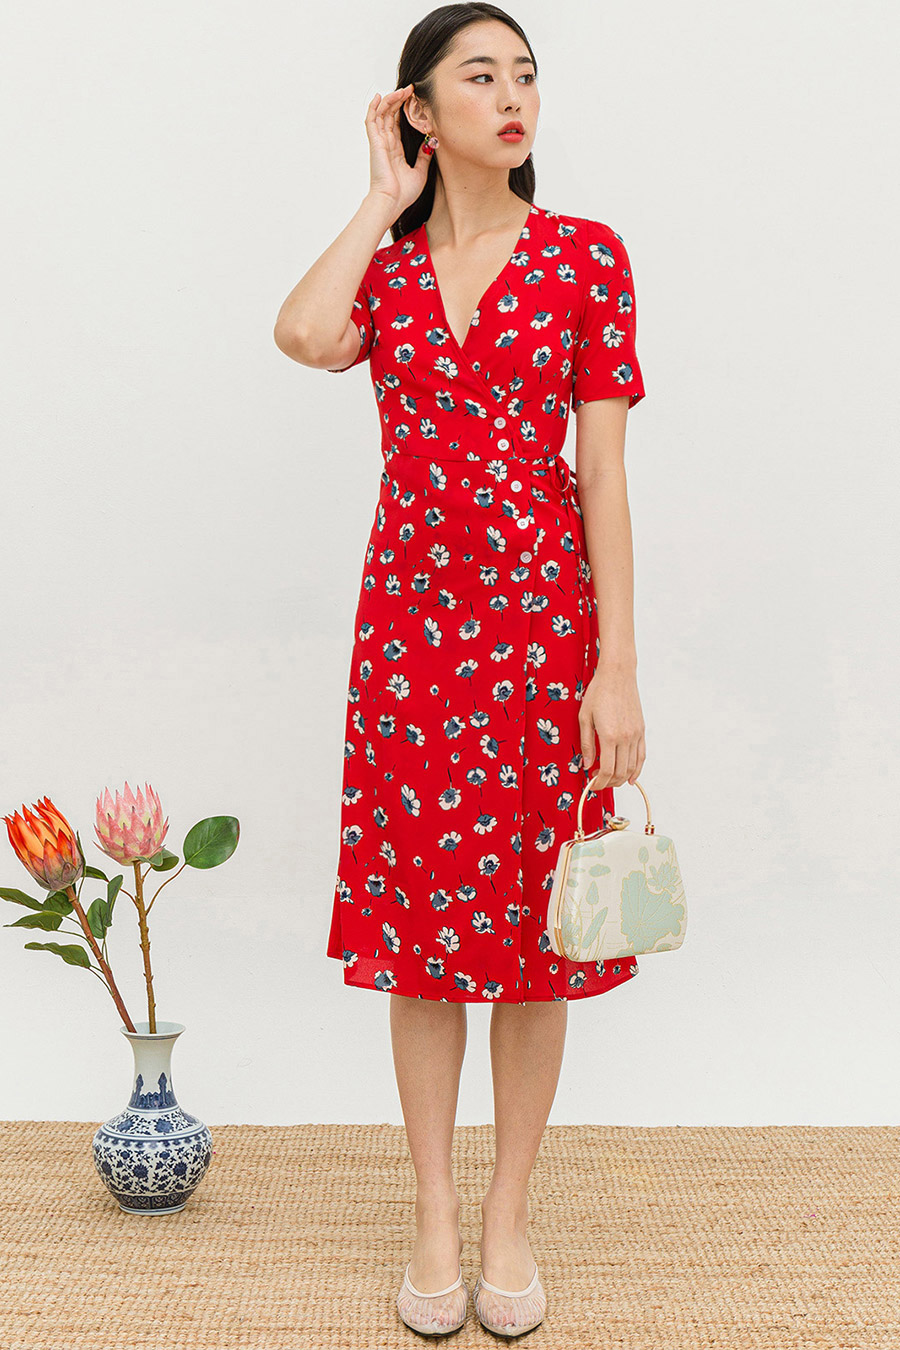 *RESTOCKED* SOFIE DRESS - RHODIA